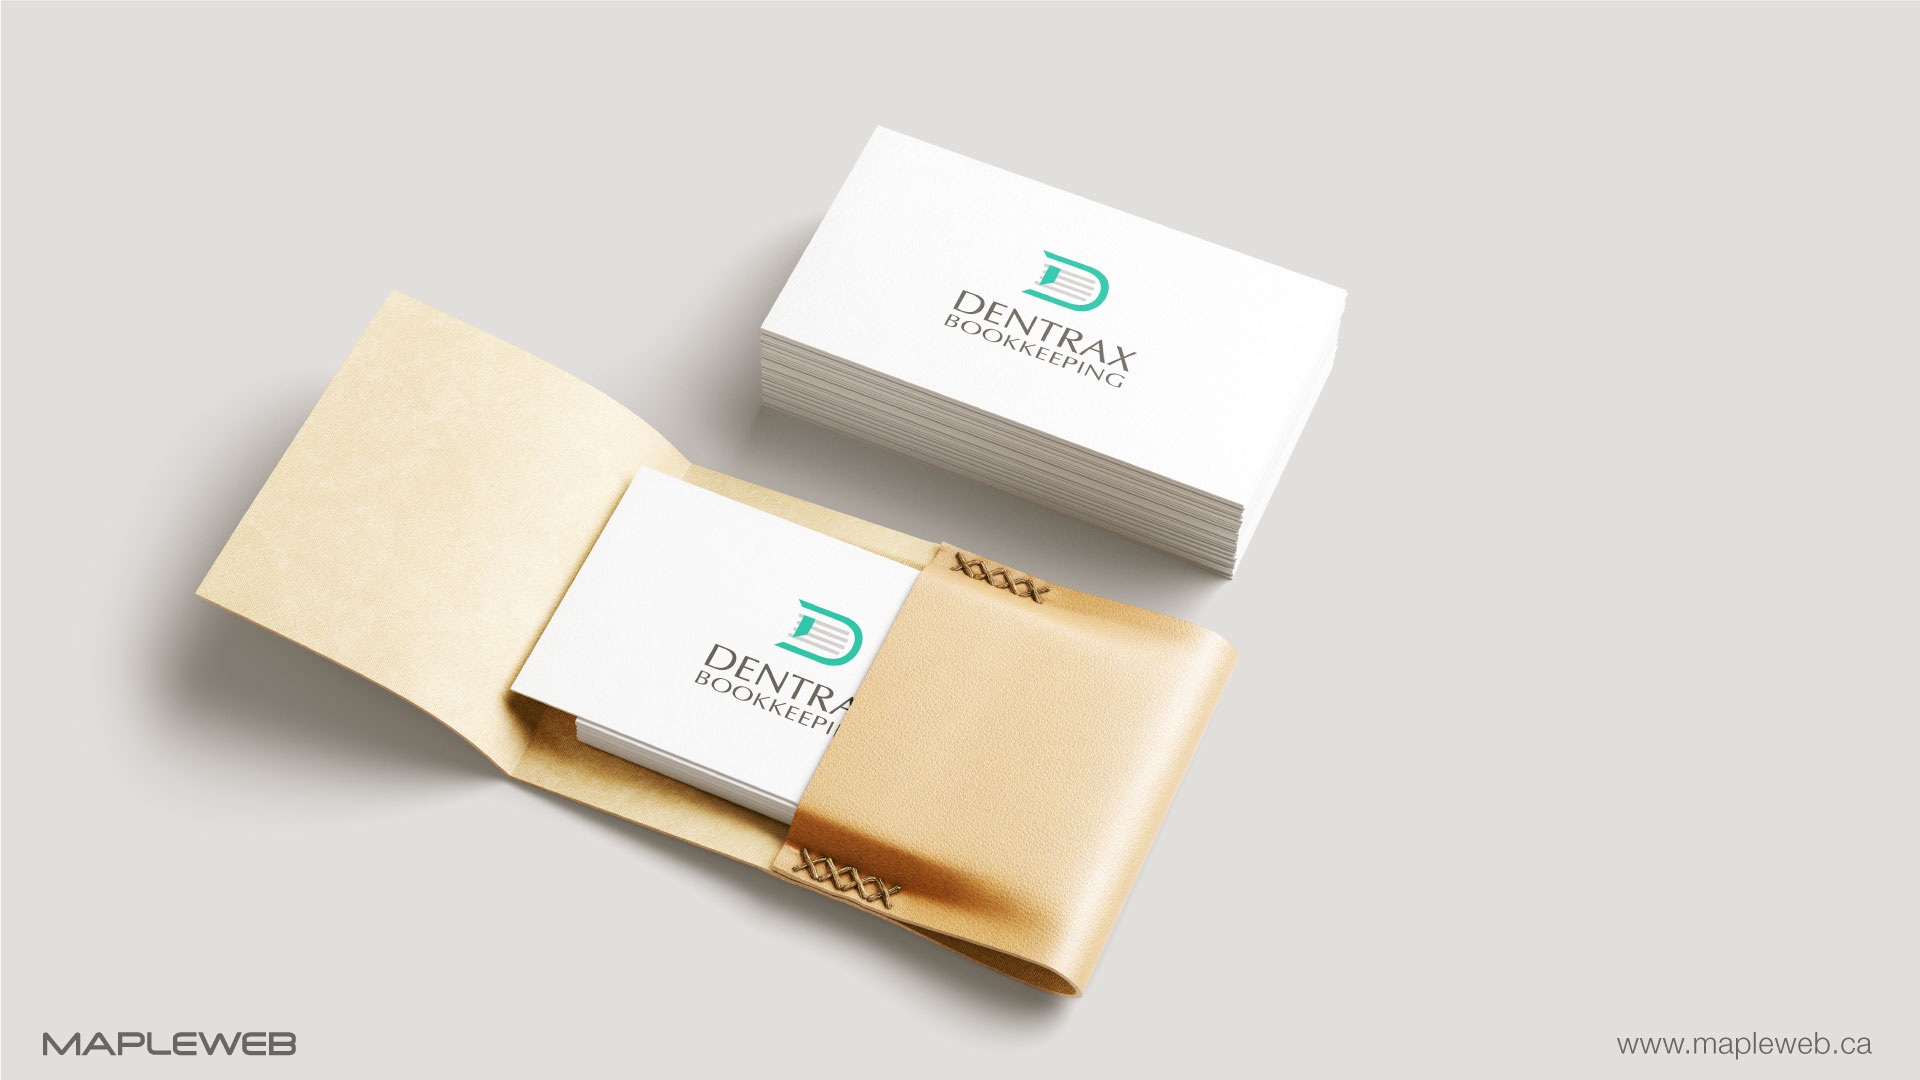 dentraxbookkeeping-brand-logo-design-by-mapleweb-vancouver-canada-business-card-mock